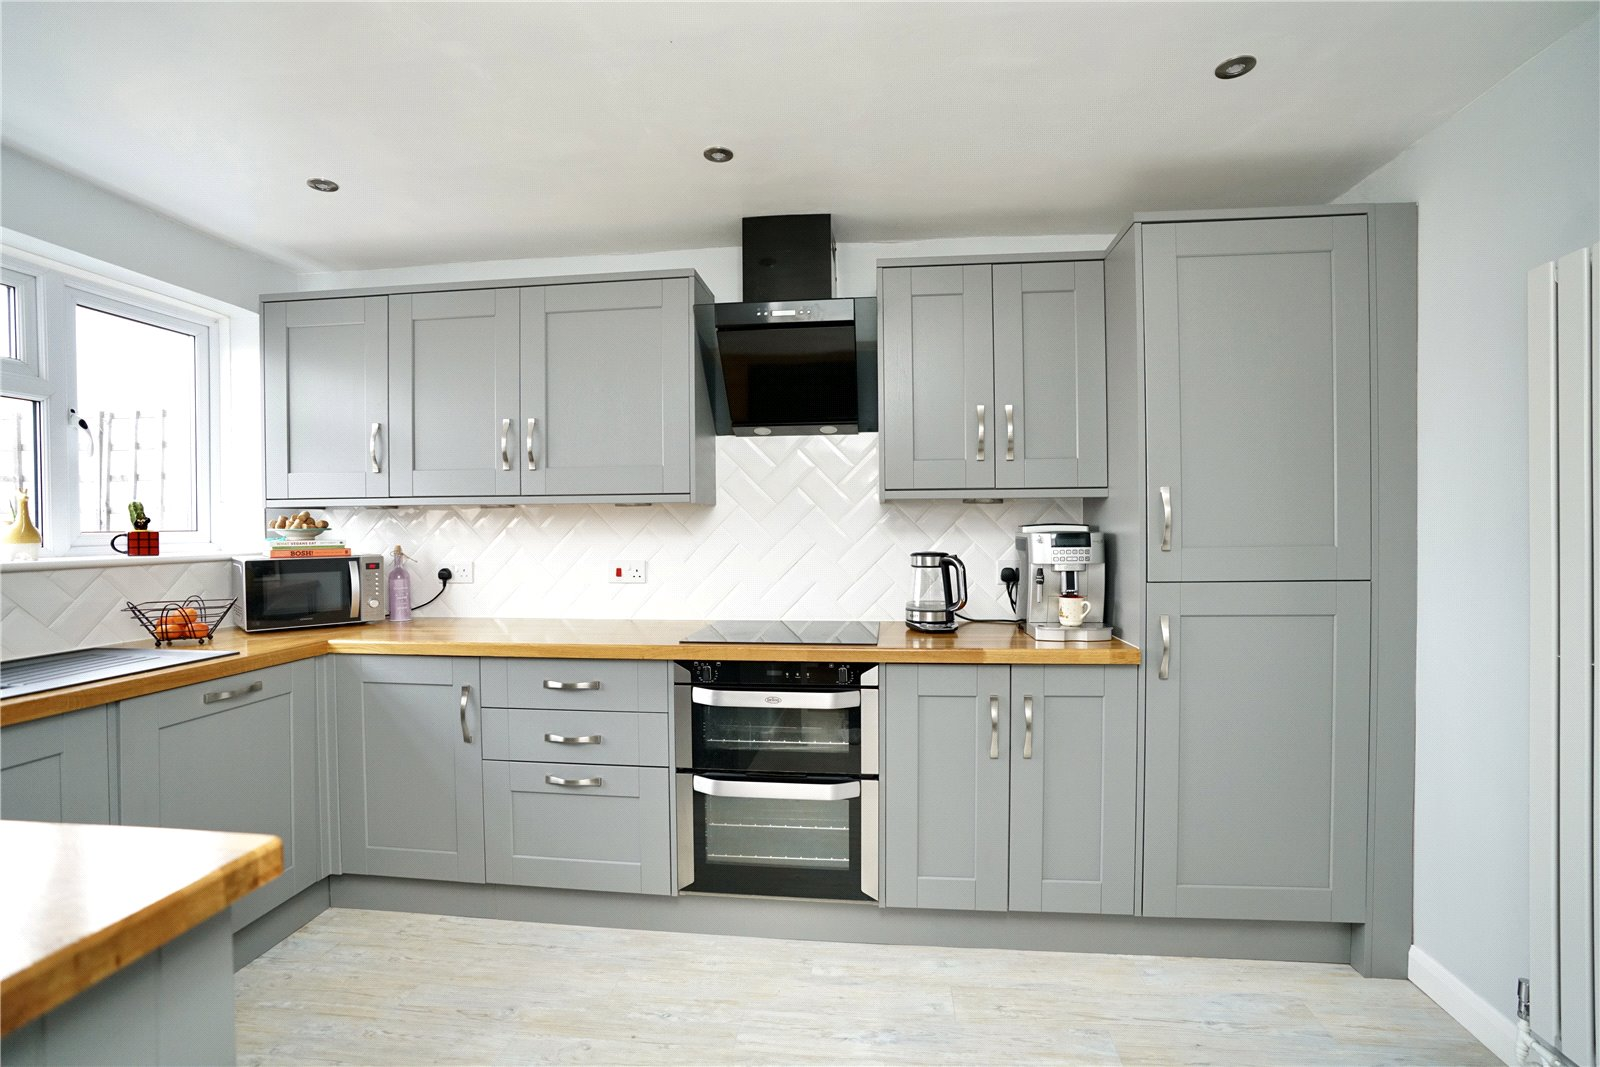 3 bed house for sale in Henbrook, St. Neots  - Property Image 7